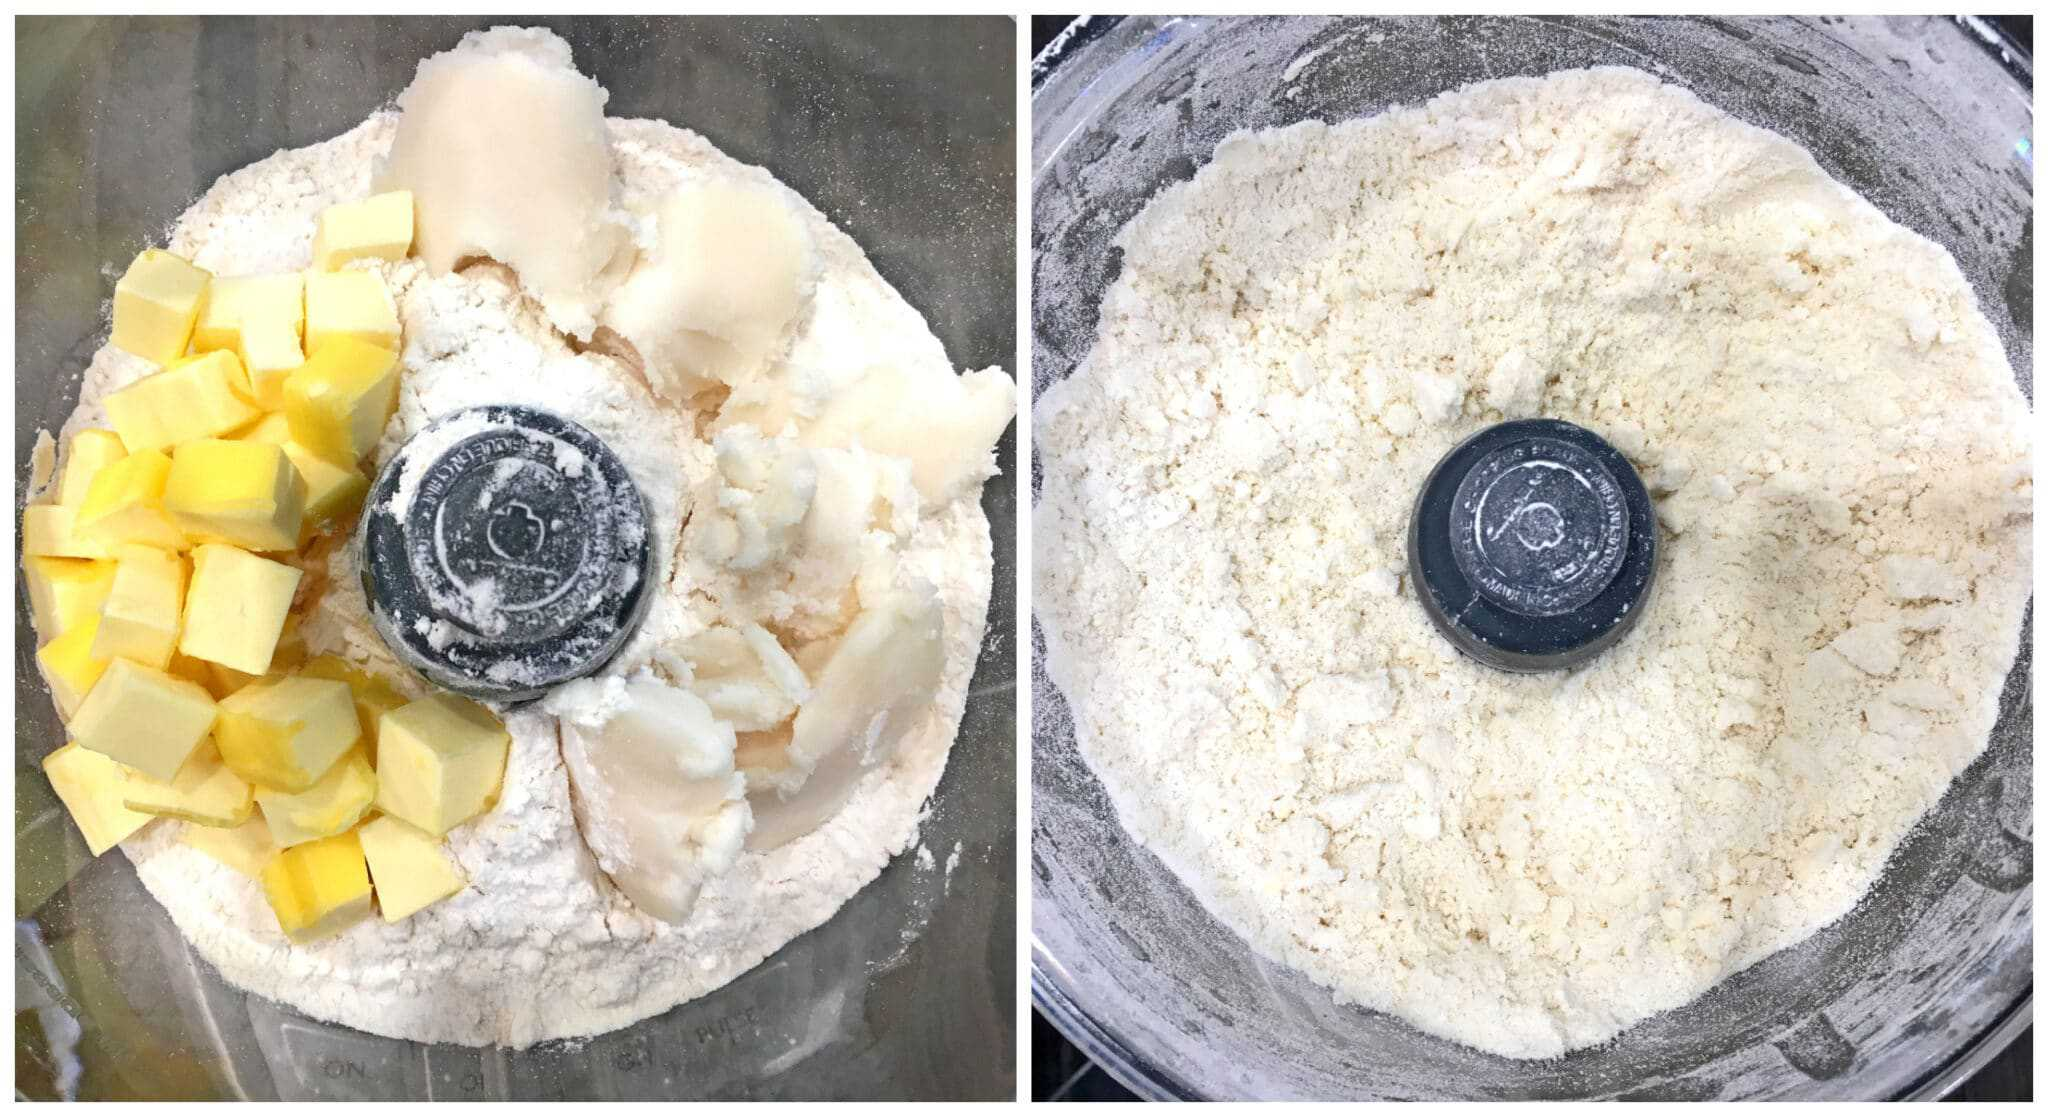 making pastry crust